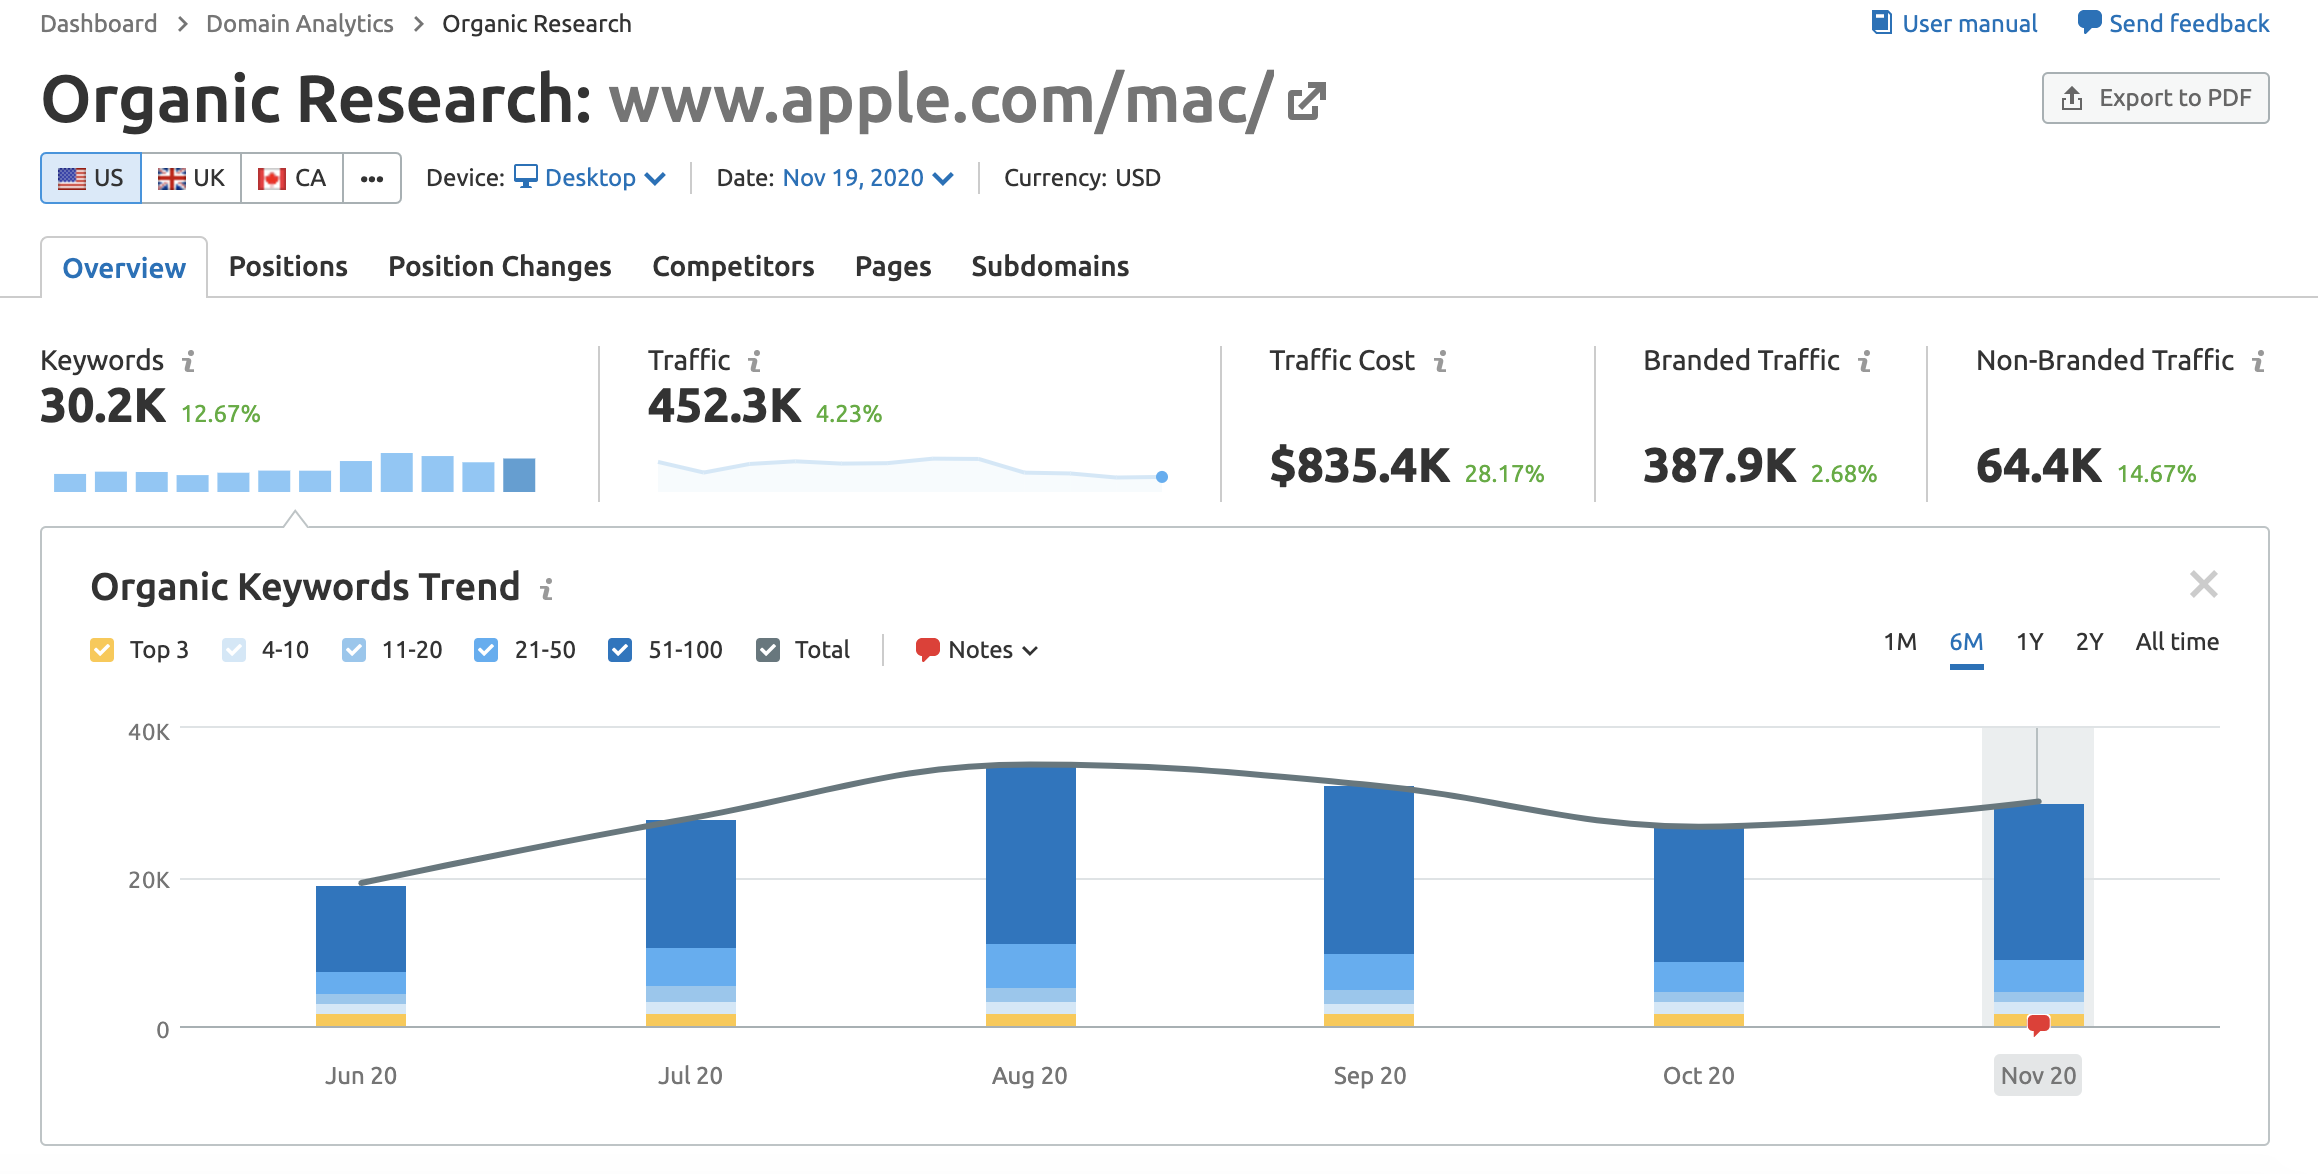 Apple Mac page data